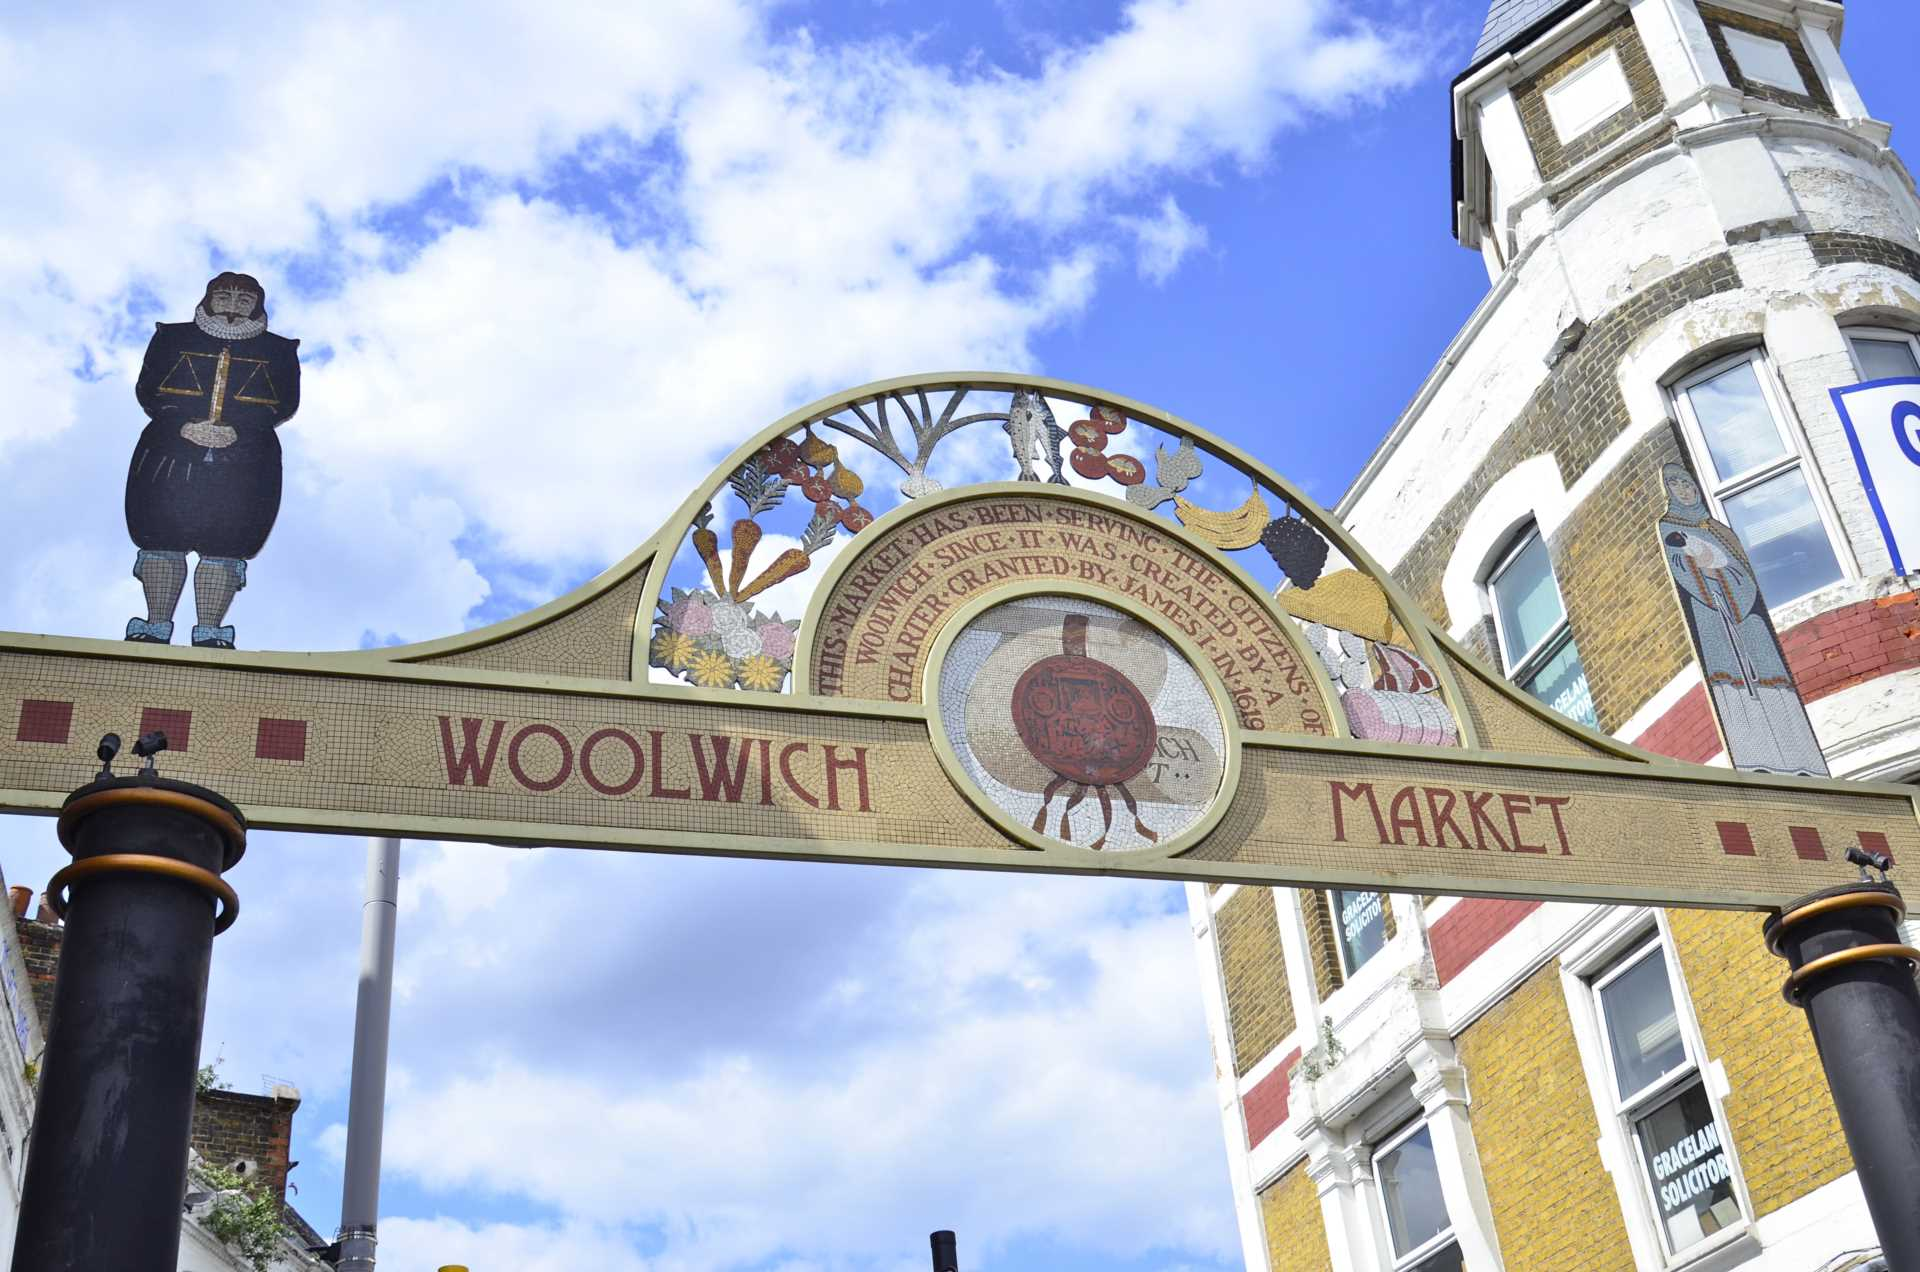 Woolwich in Top 20 Places to Invest in London